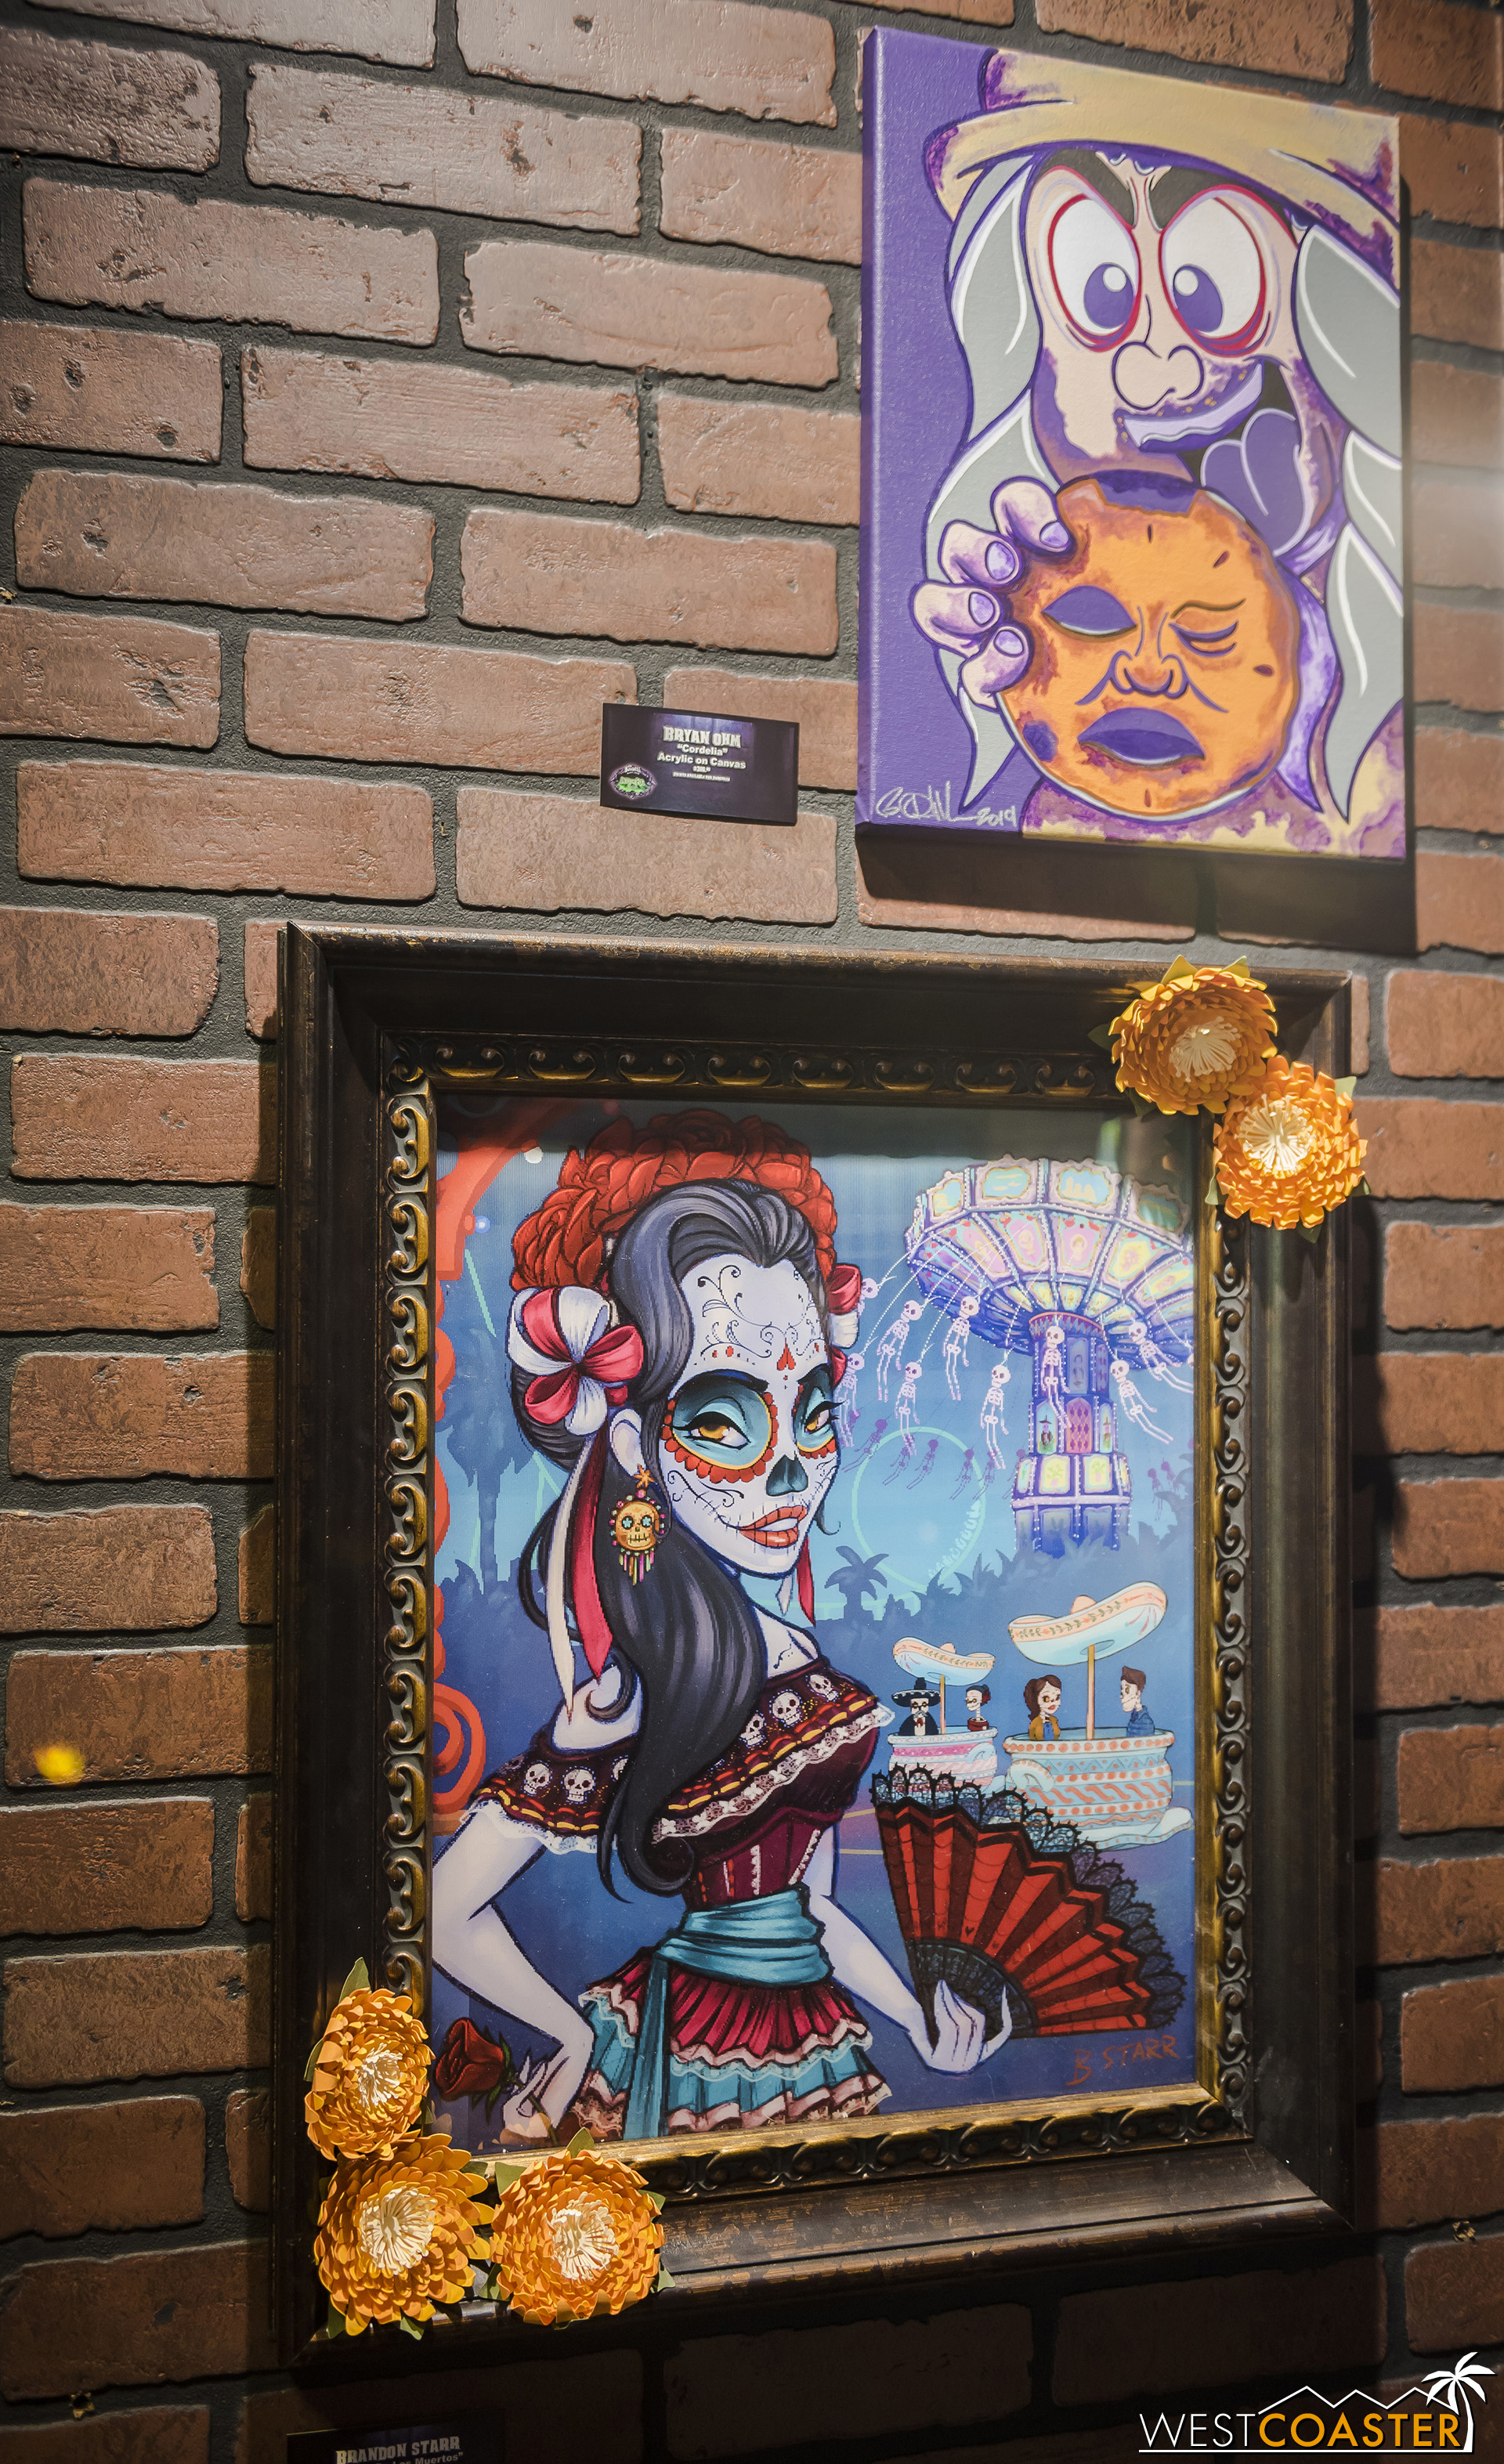 And this was cool.  Someone did a holographic piece themed to Fiesta de los Muertos!